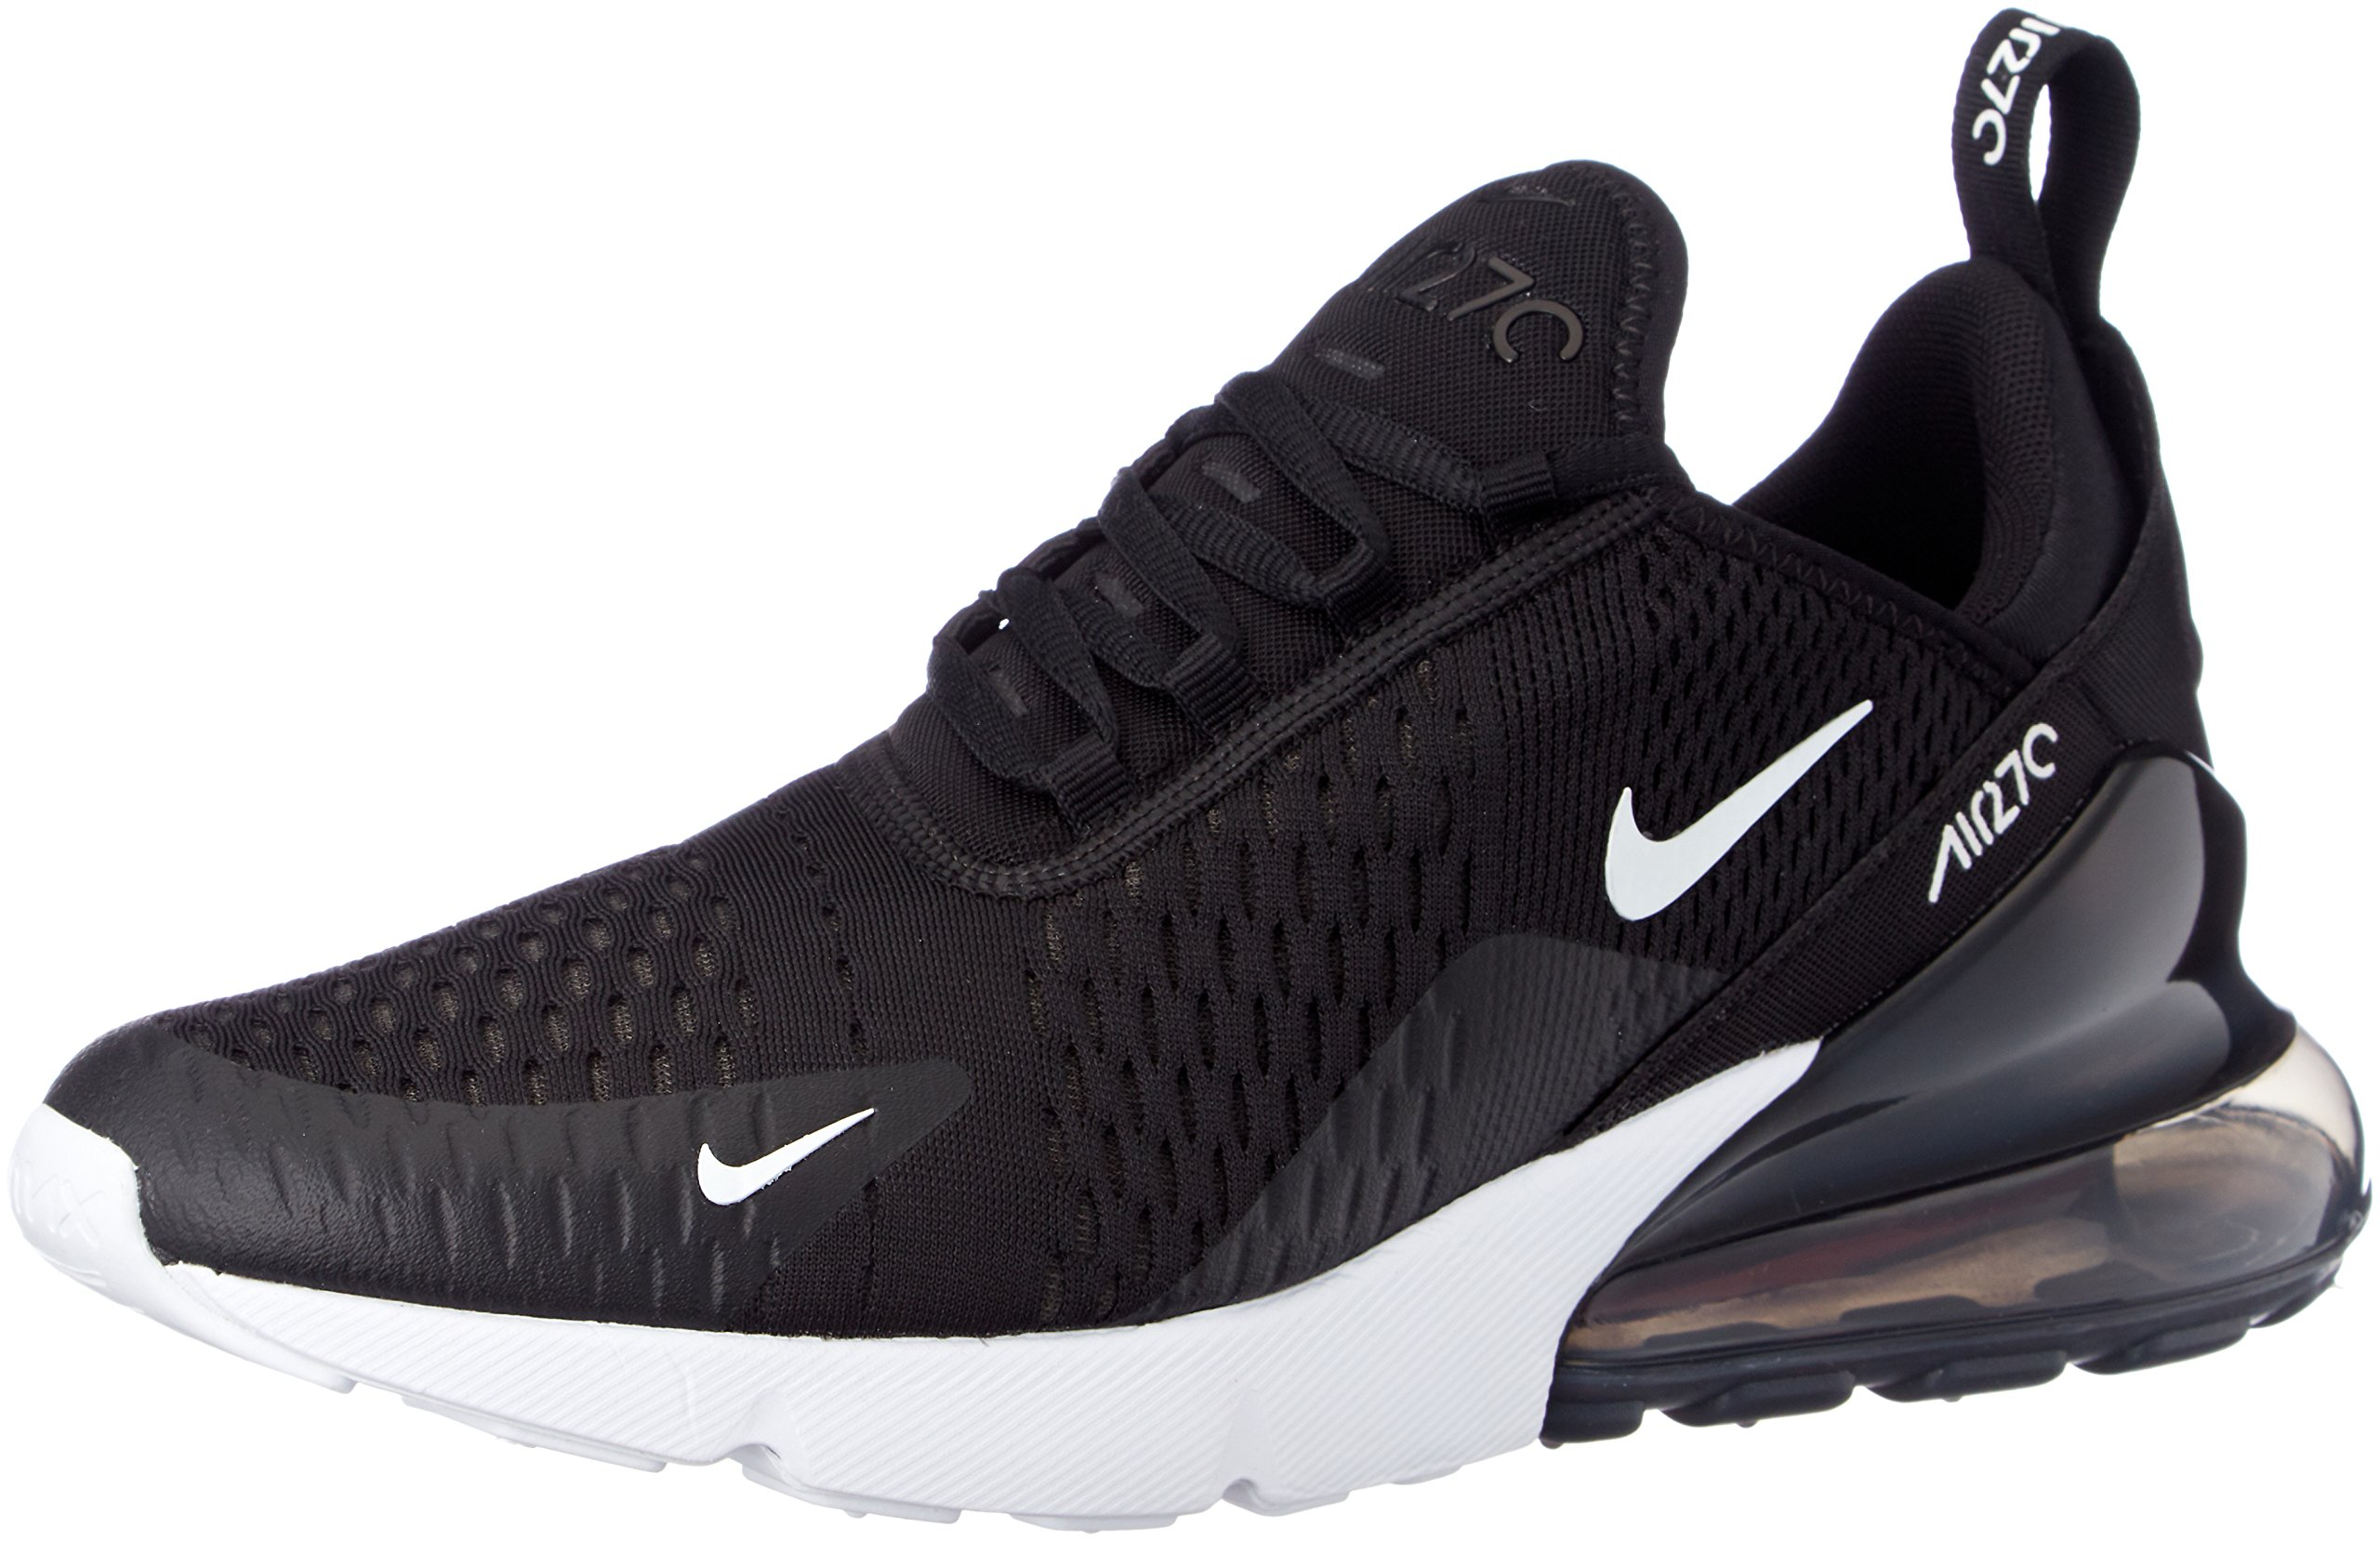 087b39fa35b450 Galleon - Nike Mens Air Max 270 Running Shoes Black White Solar Red Anthracite  AH8050-002 Size 8.5